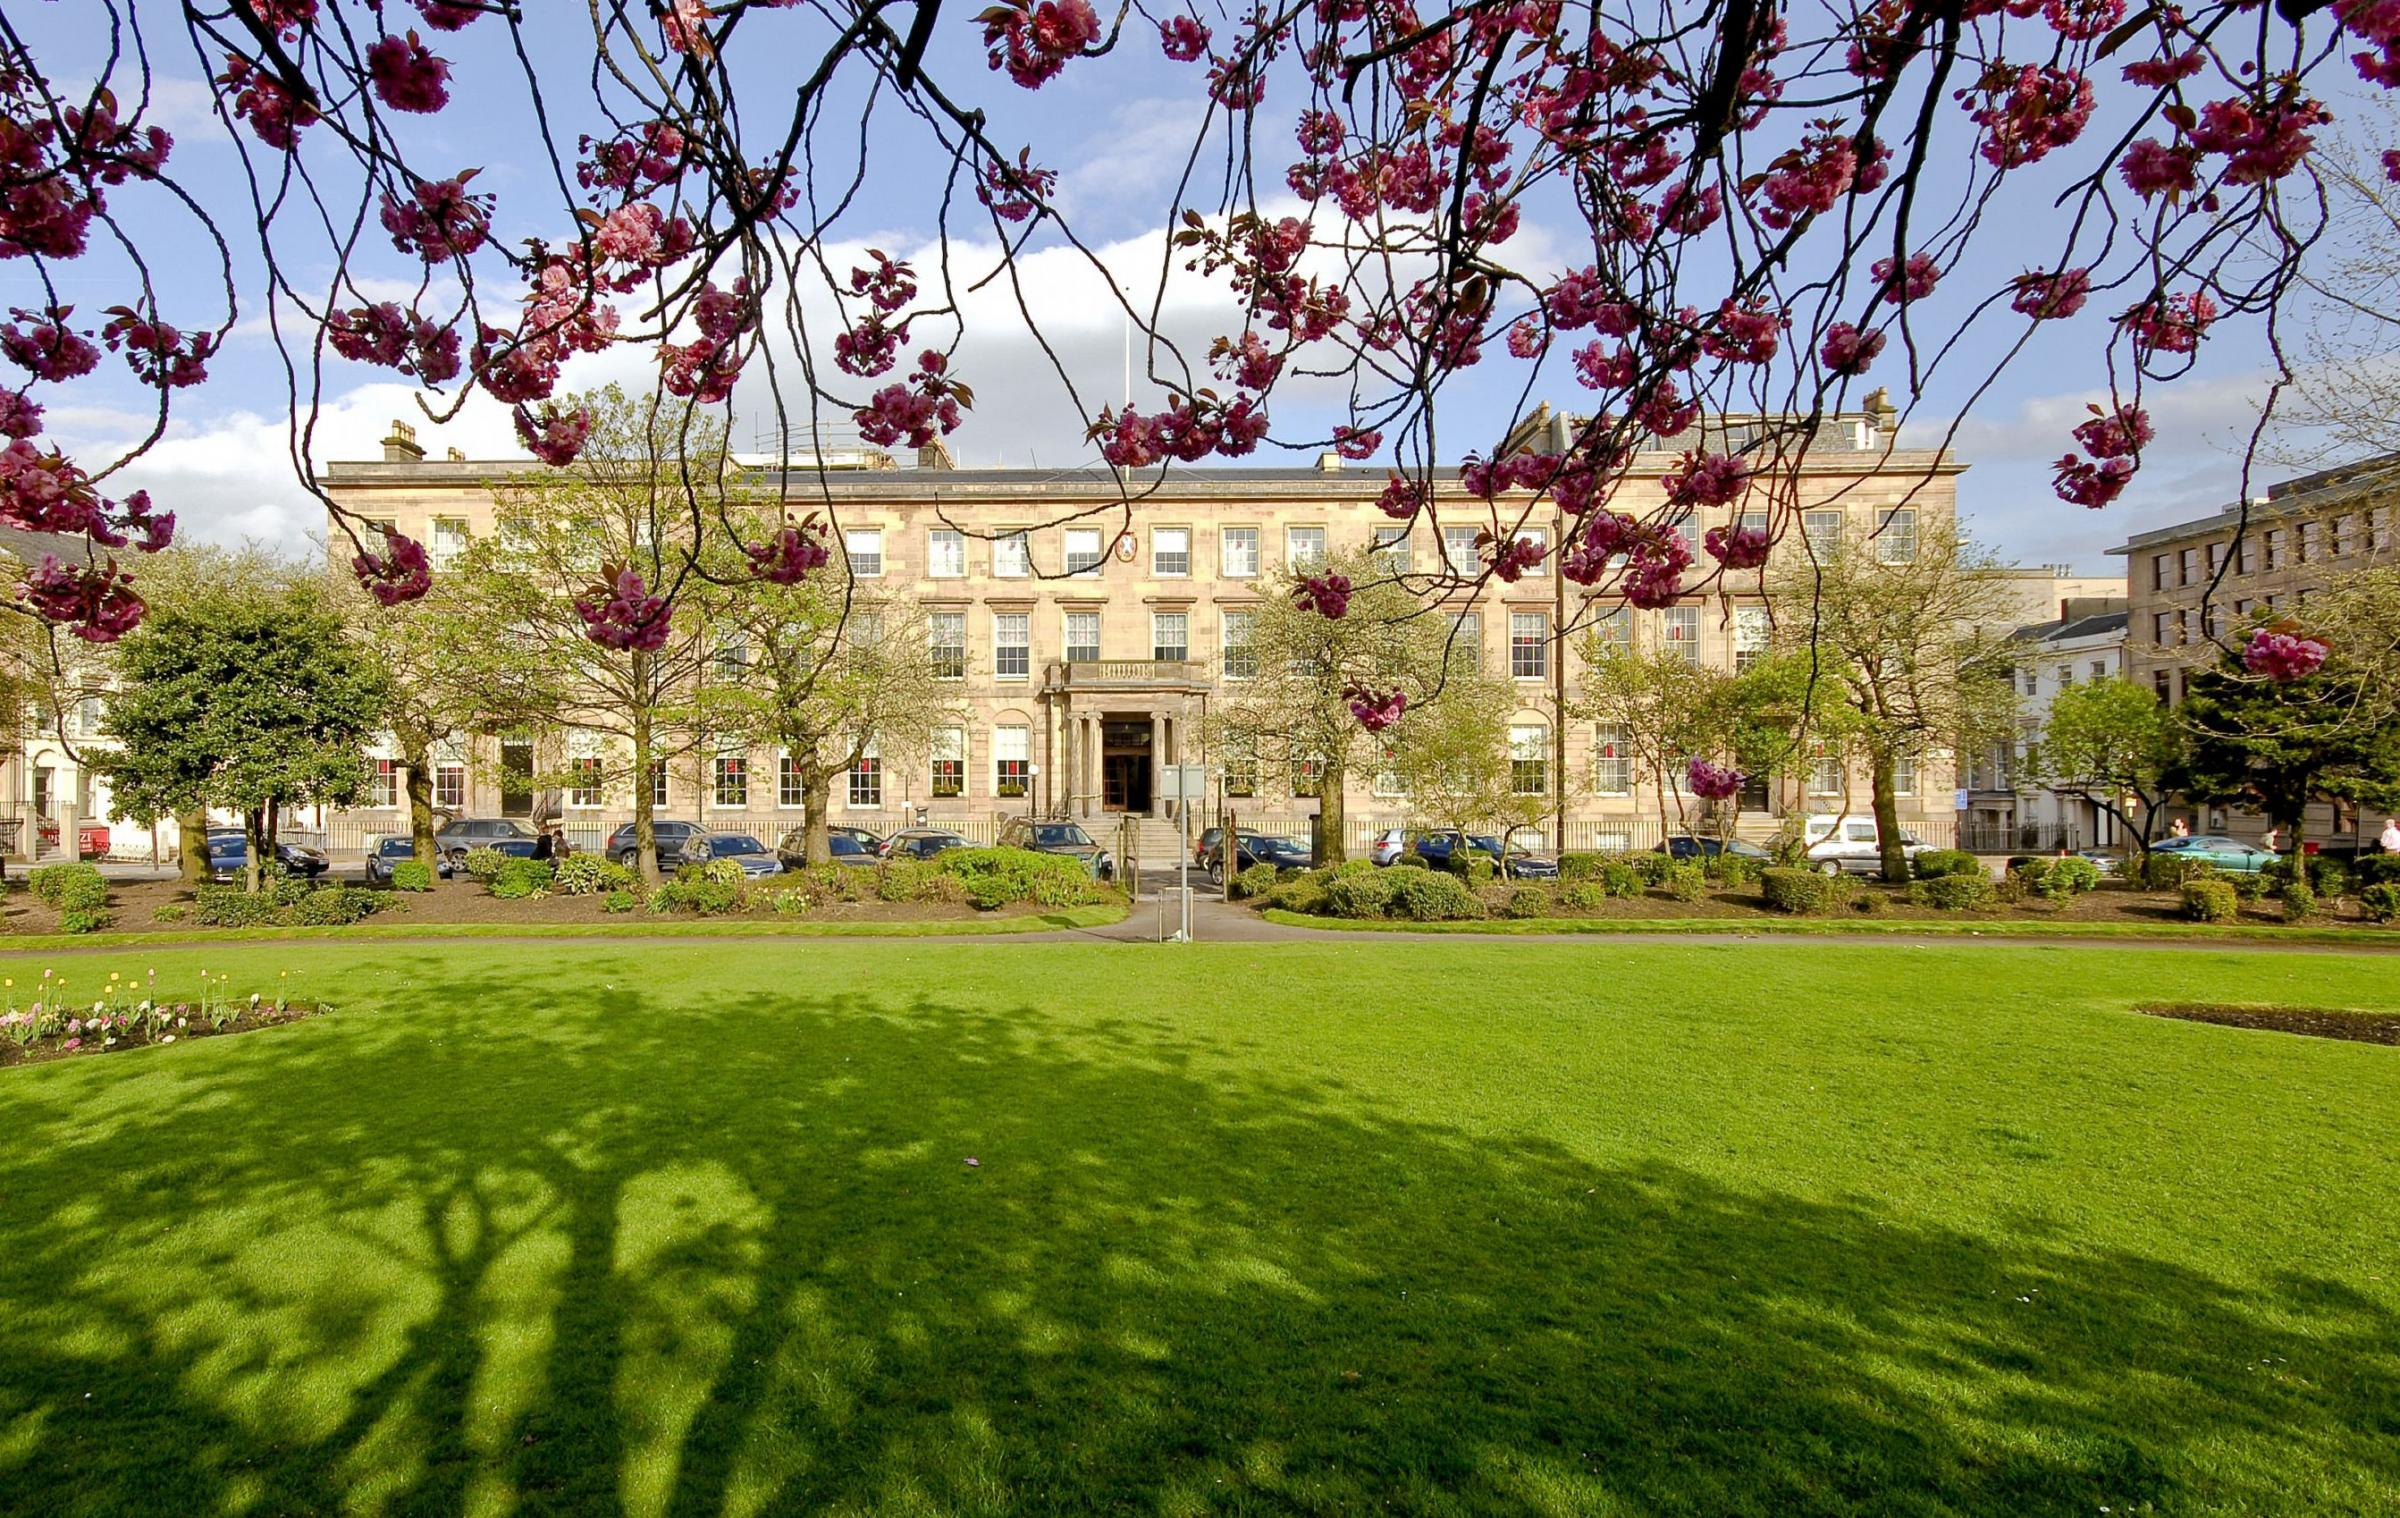 Blythswood Square Hotel won 5 Star Business Hotel and 5 Star City Hotel for the west coast at the Scottish Hotel Awards